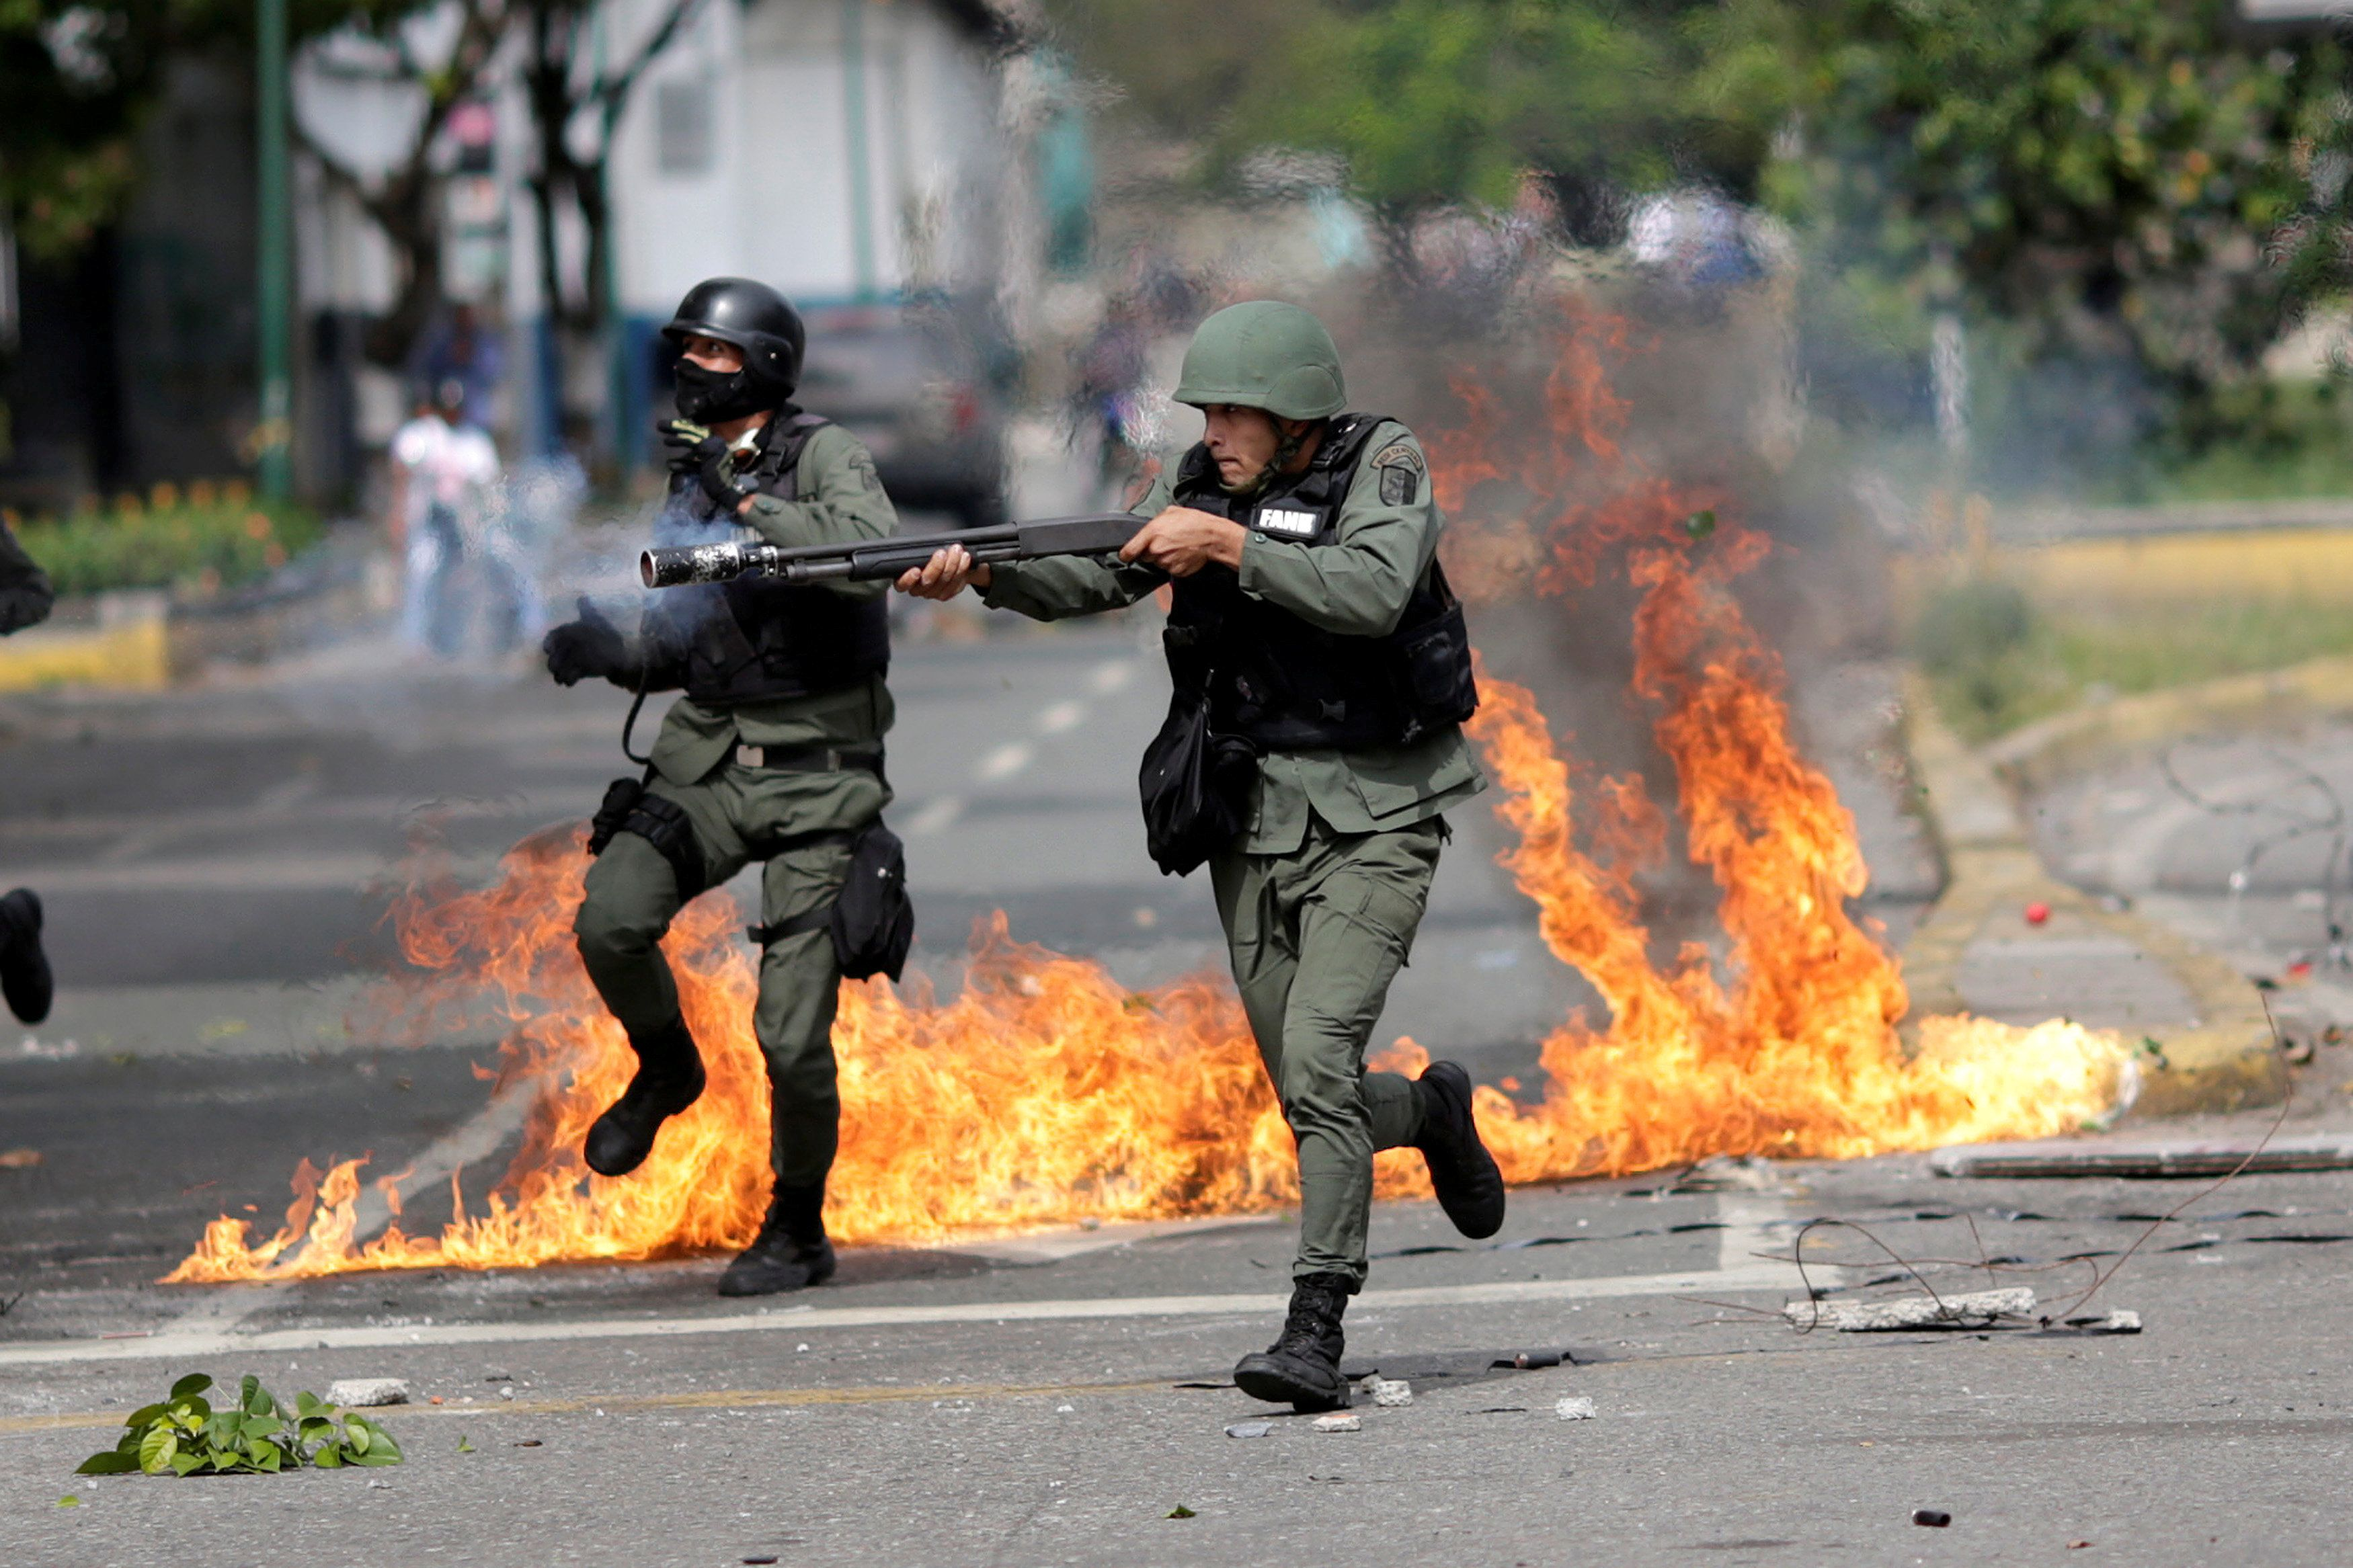 Venezuela: Ban on protests lays groundwork for mass human rights violations